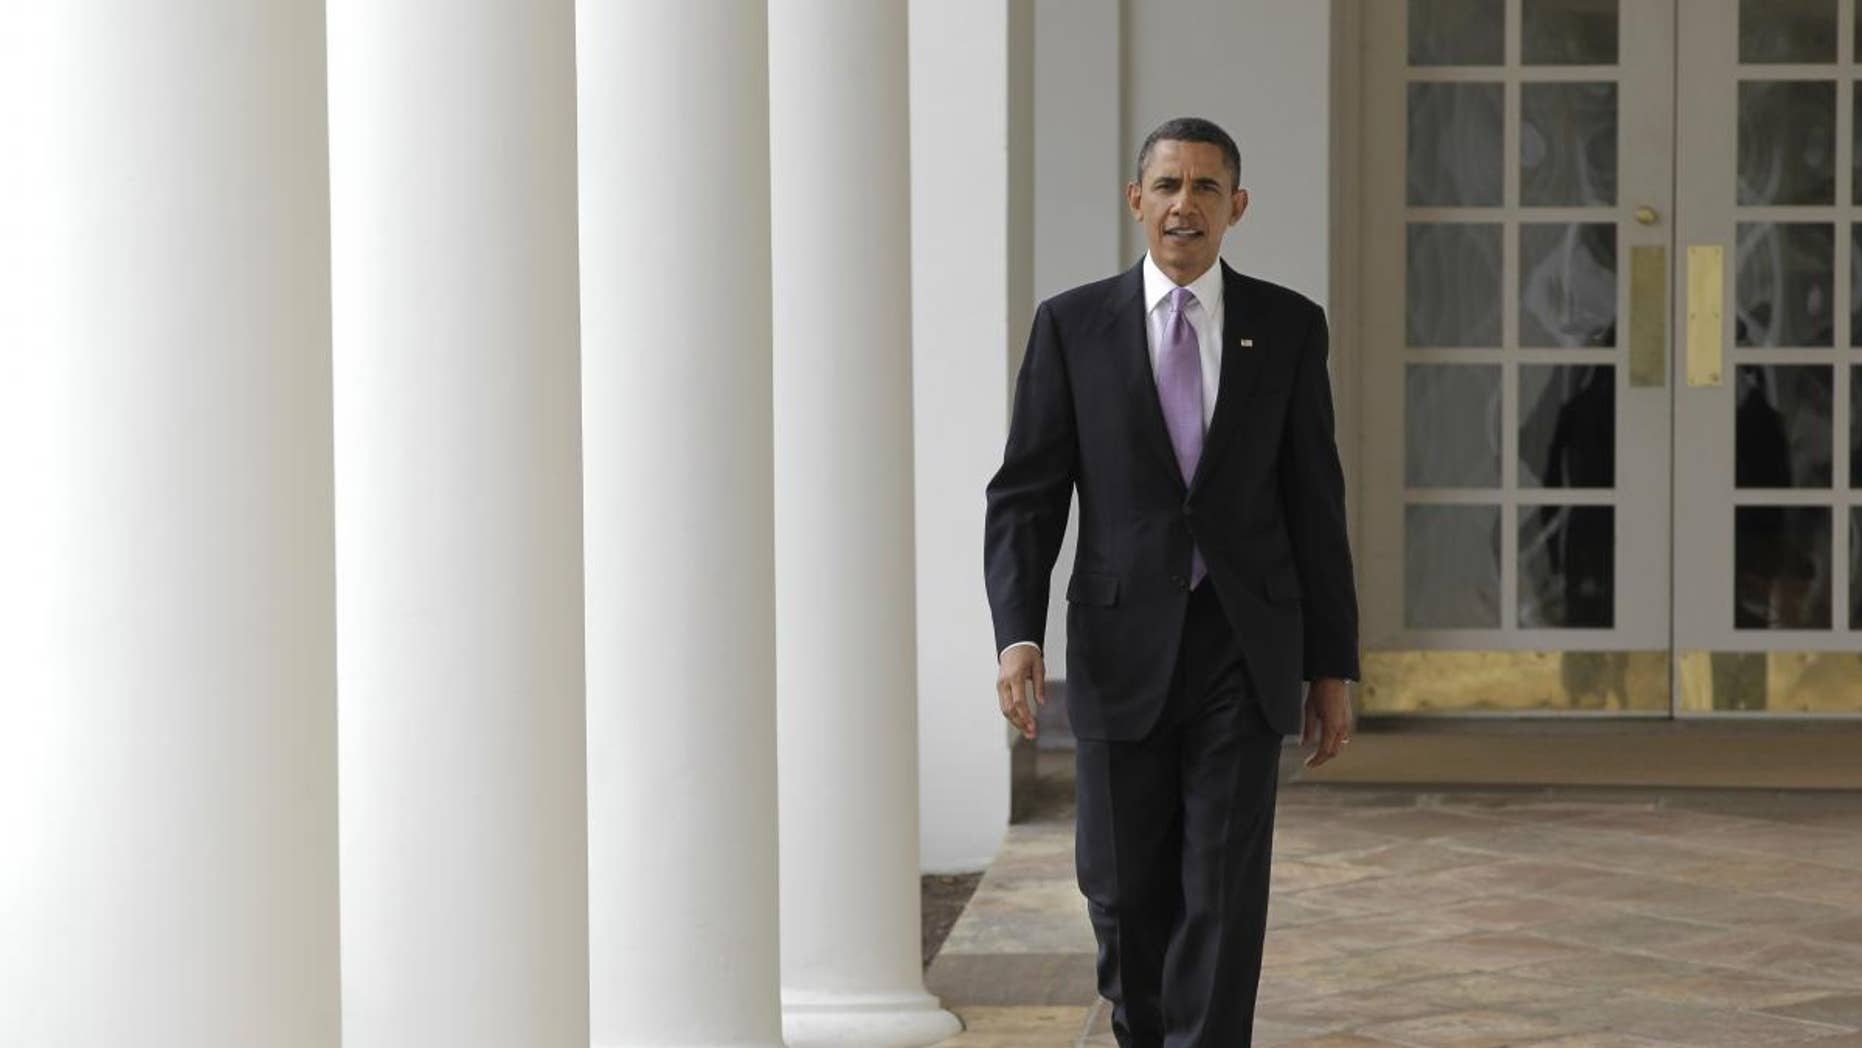 On the day of his State of the Union address, President Barack Obama strides from the Oval Office along the Colonnade at the White House in Washington, Tuesday, Jan. 25, 2011. (AP Photo/J. Scott Applewhite)